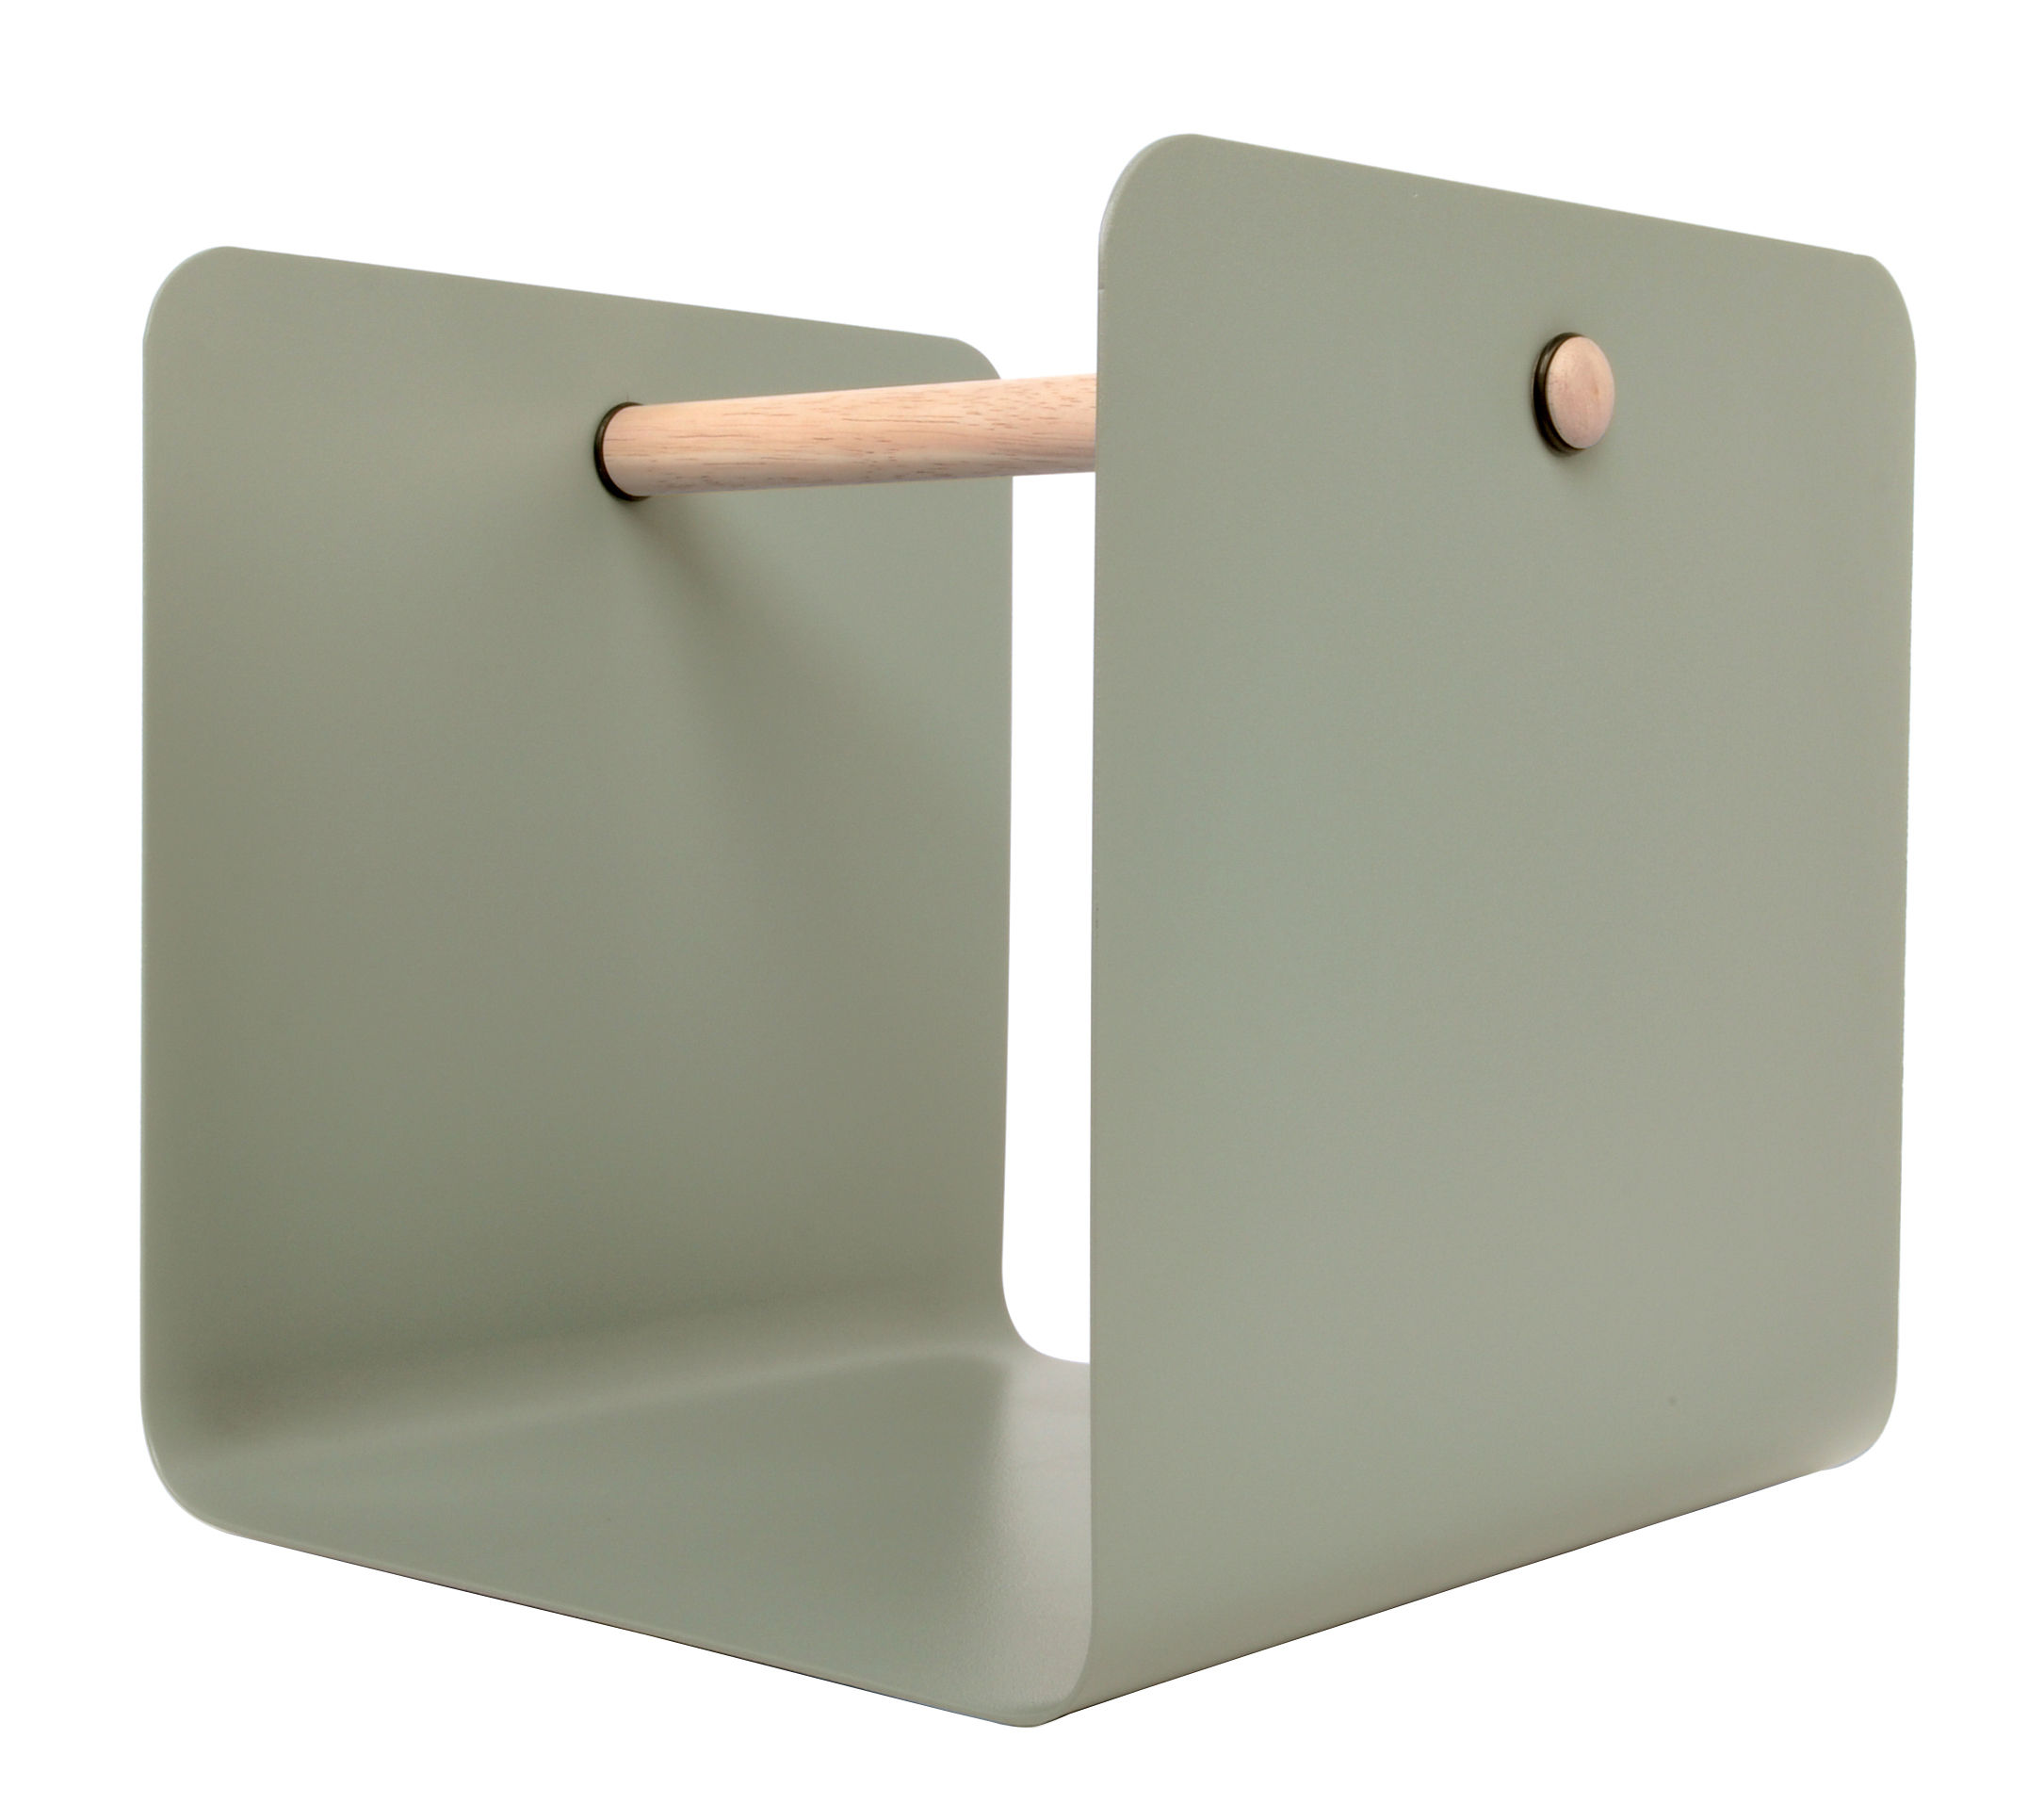 Decoration - Boxes & Baskets - Flow Magazine holder by XL Boom - Clay - Natural wood, Painted steel